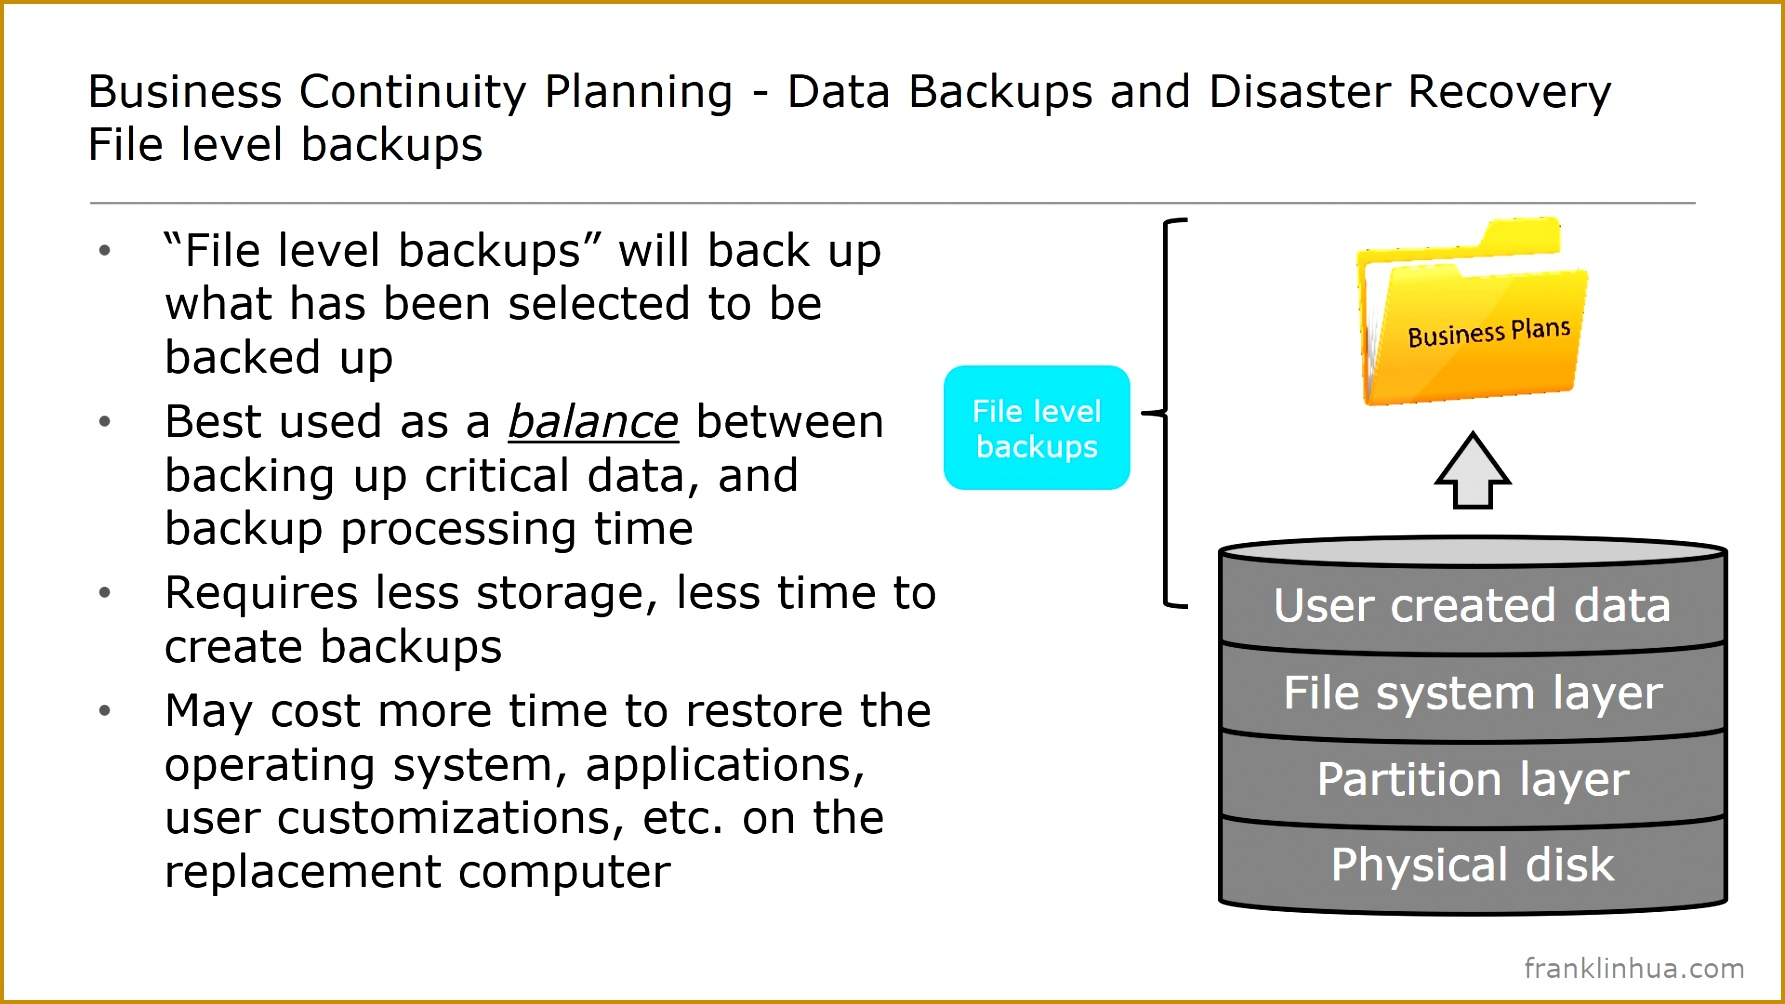 Information Technology Disaster Recovery Plan Template Beautiful Disaster Recovery Developing A Business Continuity Plan to Cope 10041785